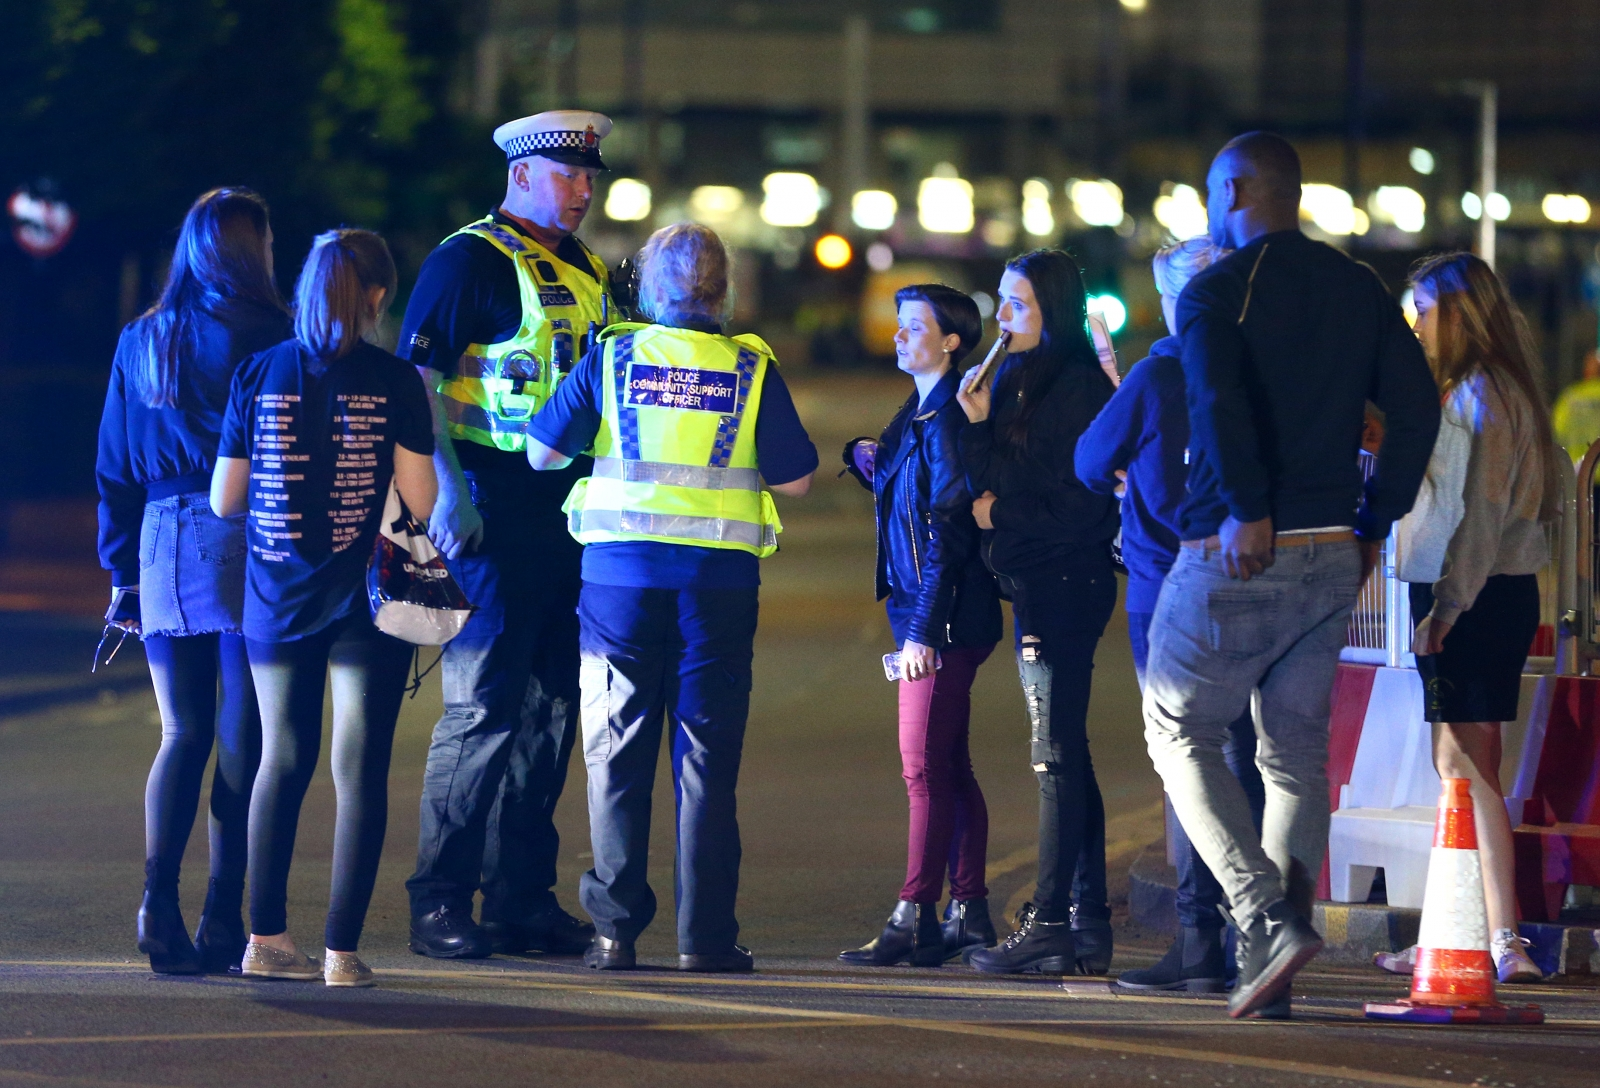 Social Media Users Rally To Help People Stranded After Manchester Attack